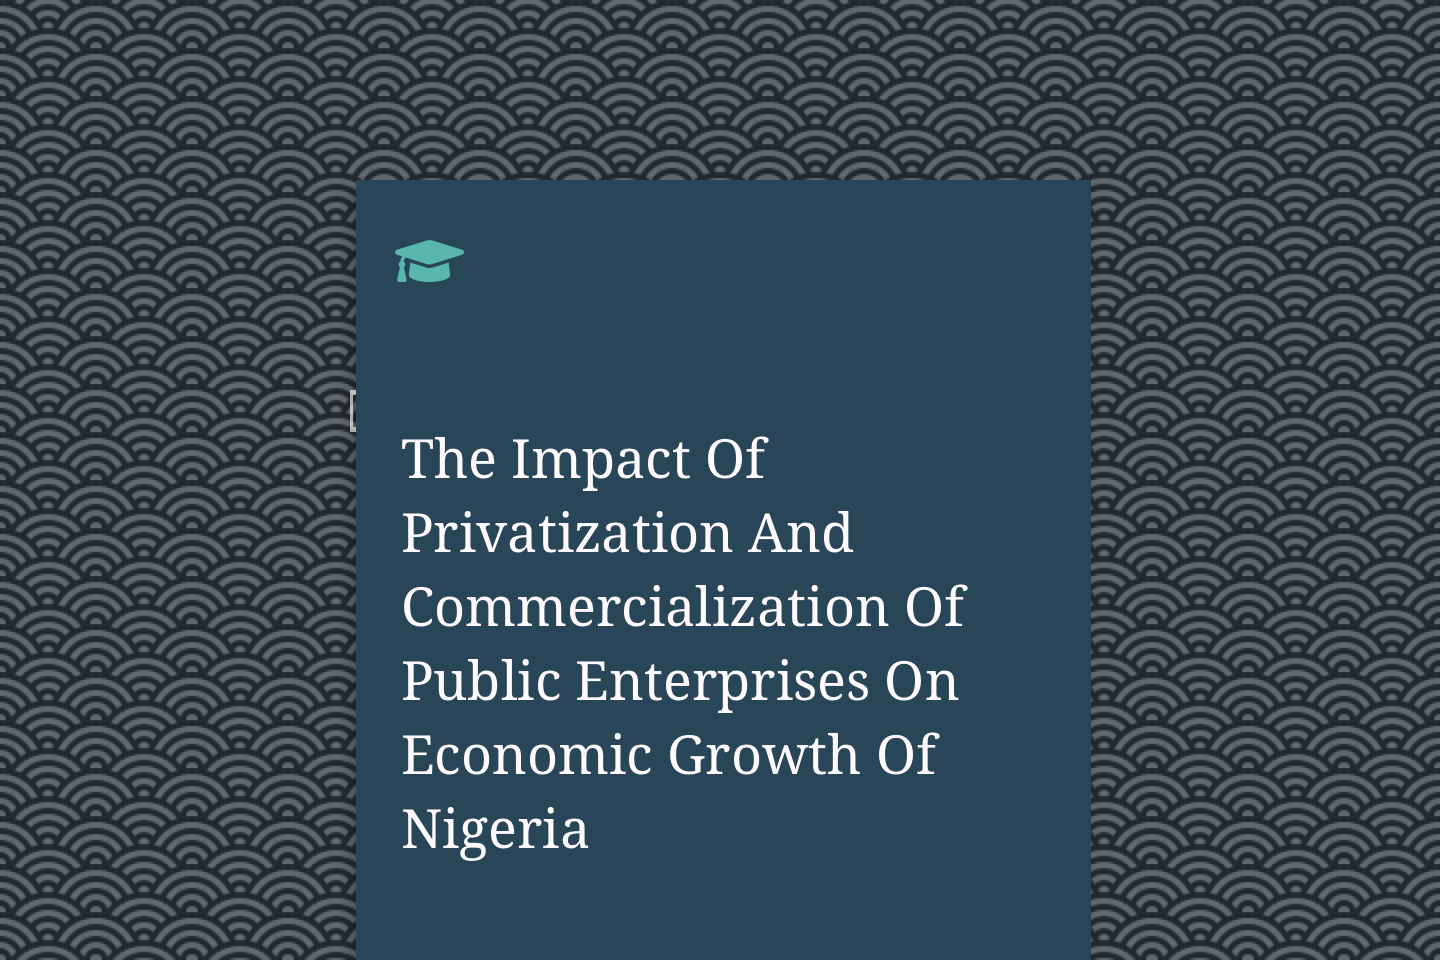 The Impact Of Privatization And Commercialization Of Public Enterprises On Economic Growth Of Nigeria